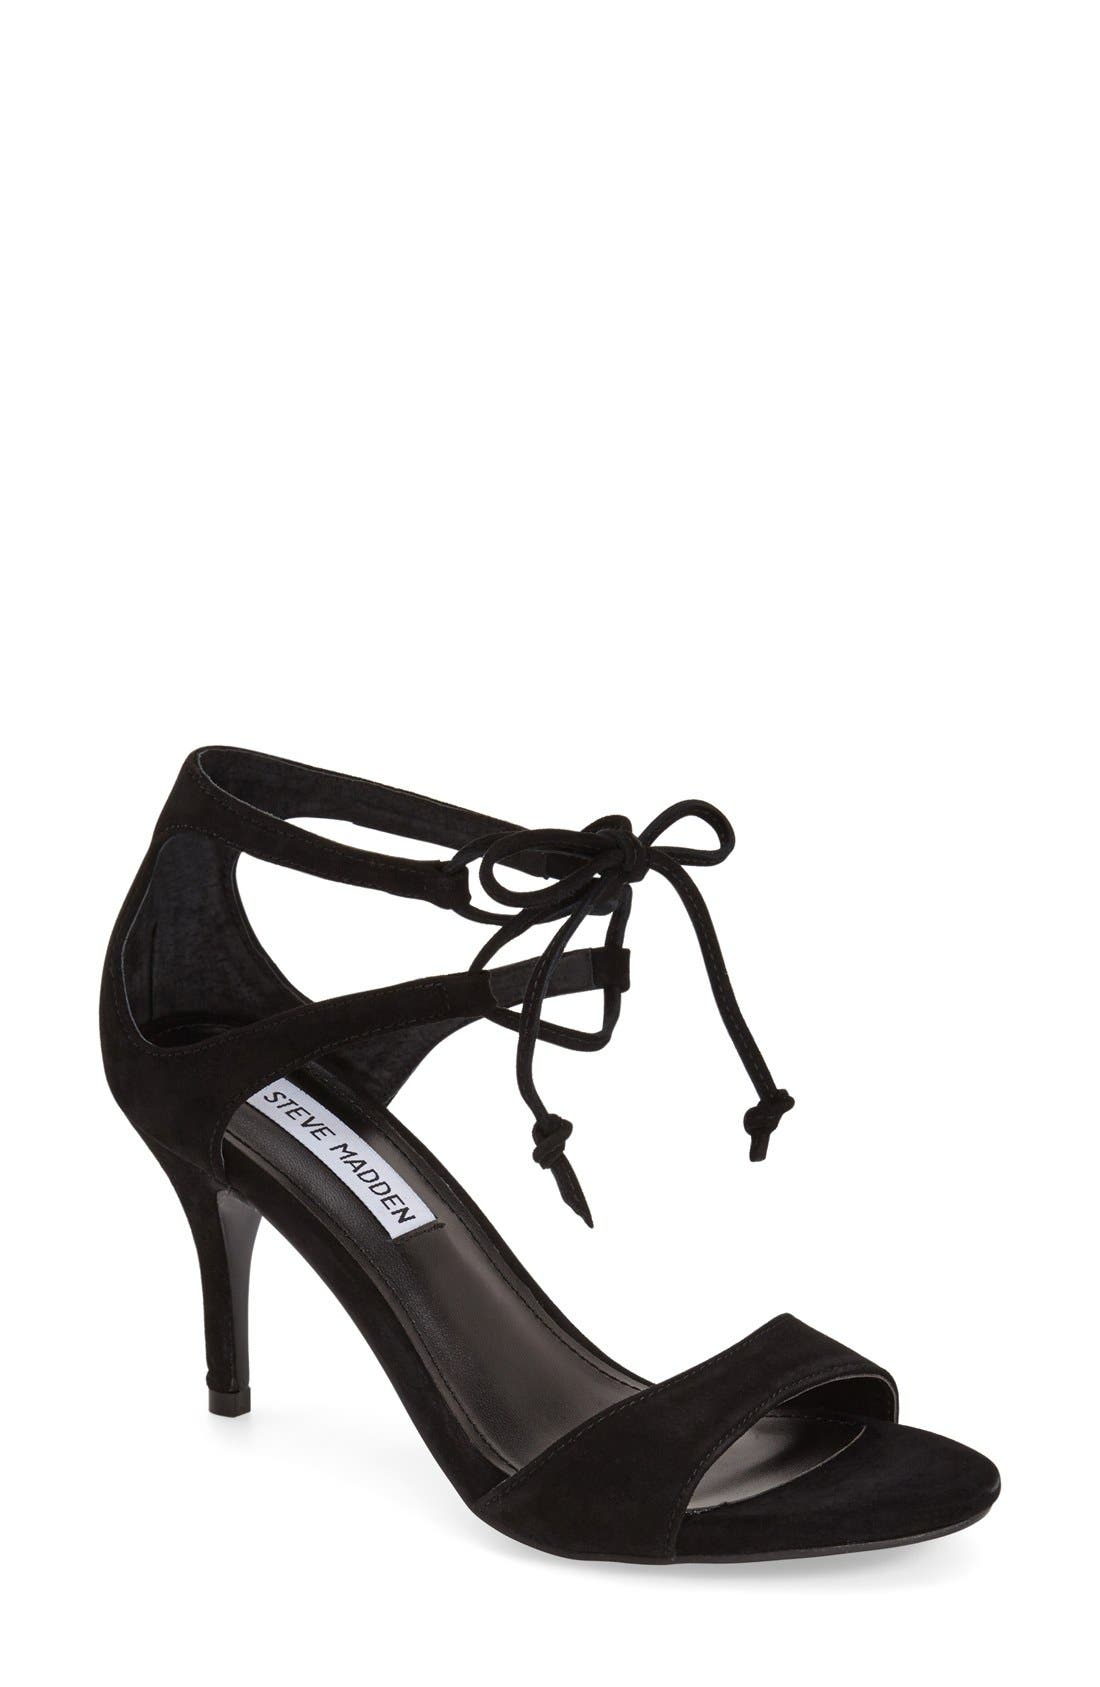 'Salsaa' Lace-Up Ankle Strap Sandal,                         Main,                         color,